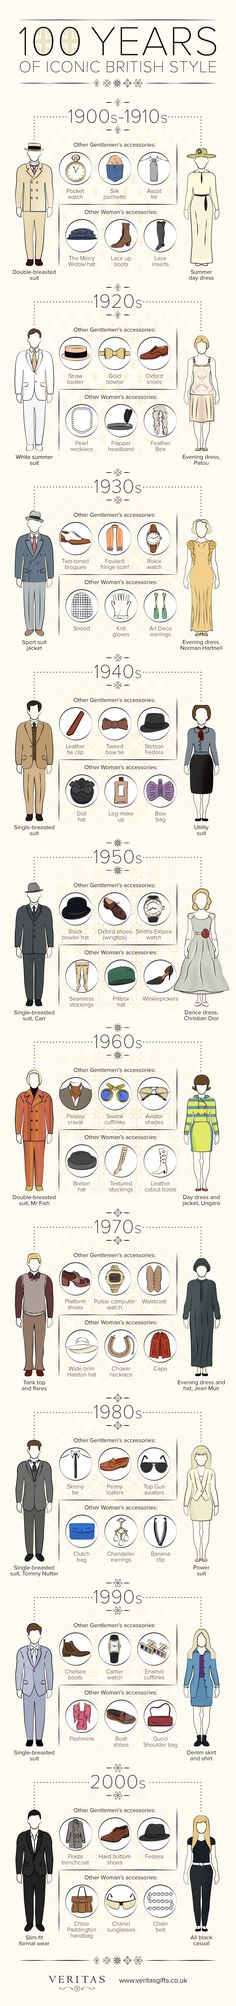 100 Years of Iconic British Style #Infographic #Fashion #LifeStyle